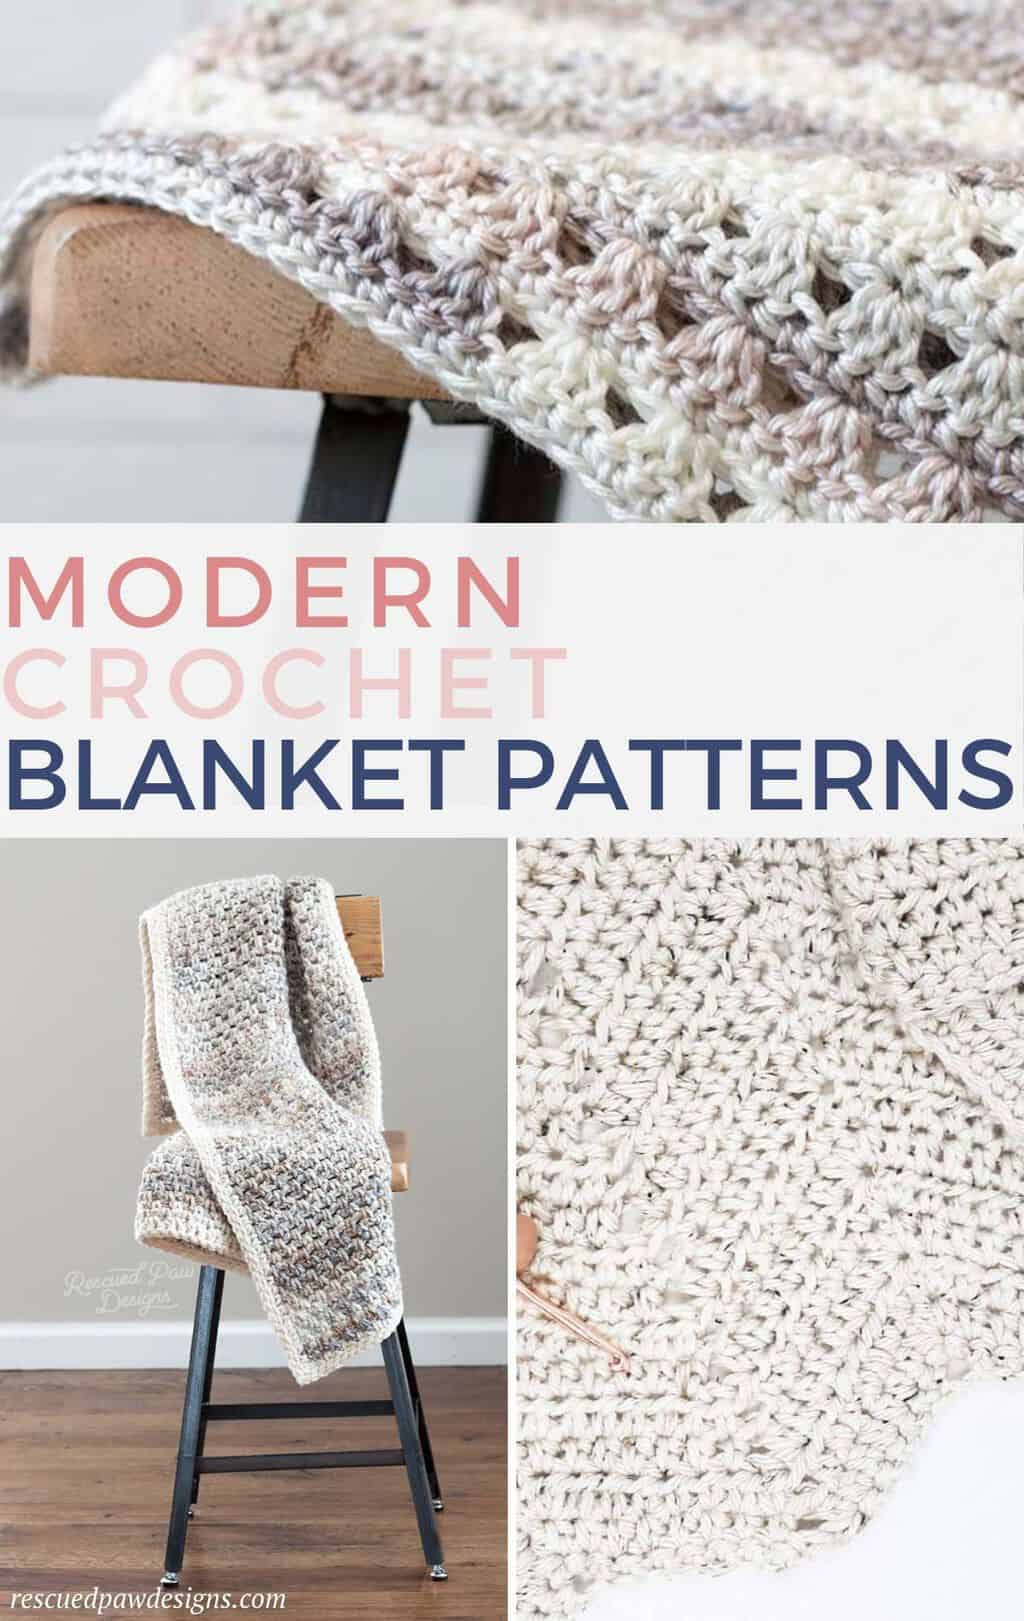 Free Modern Crochet Patterns for Blankets